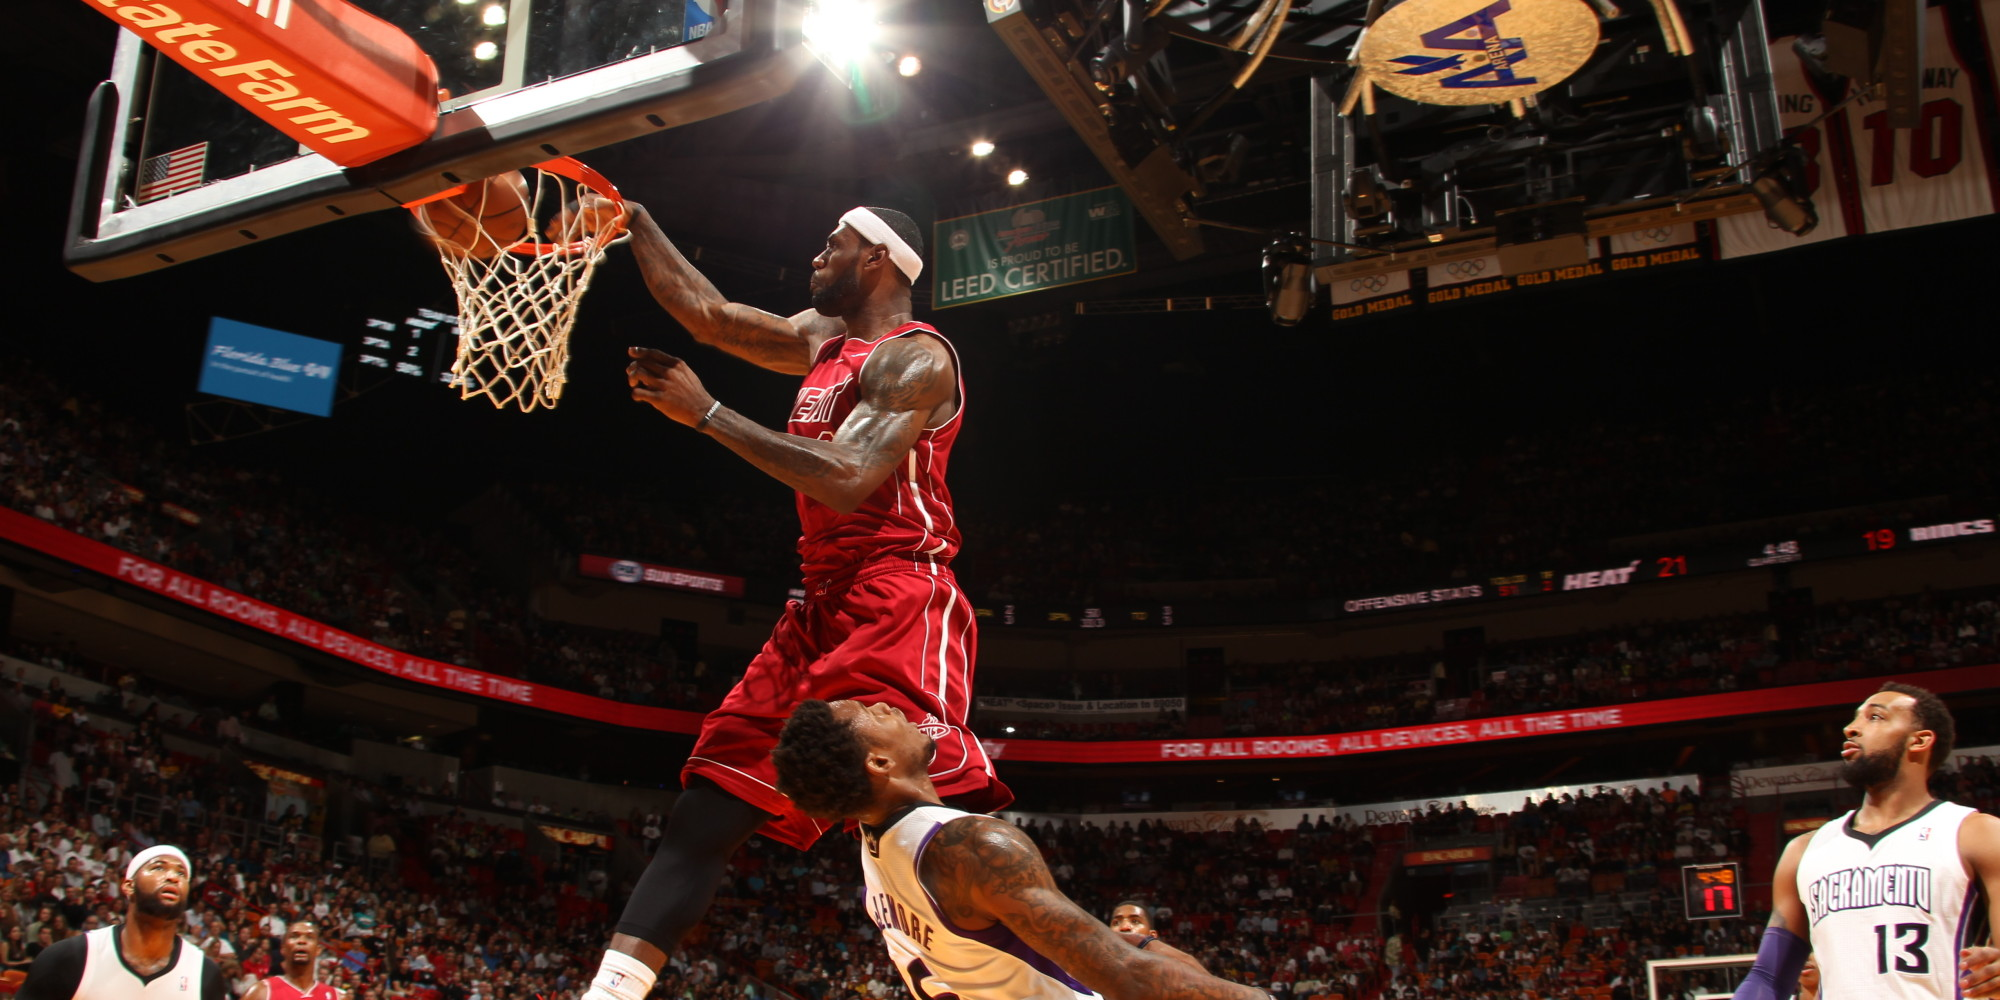 LeBron James Slam Dunk  Bing images